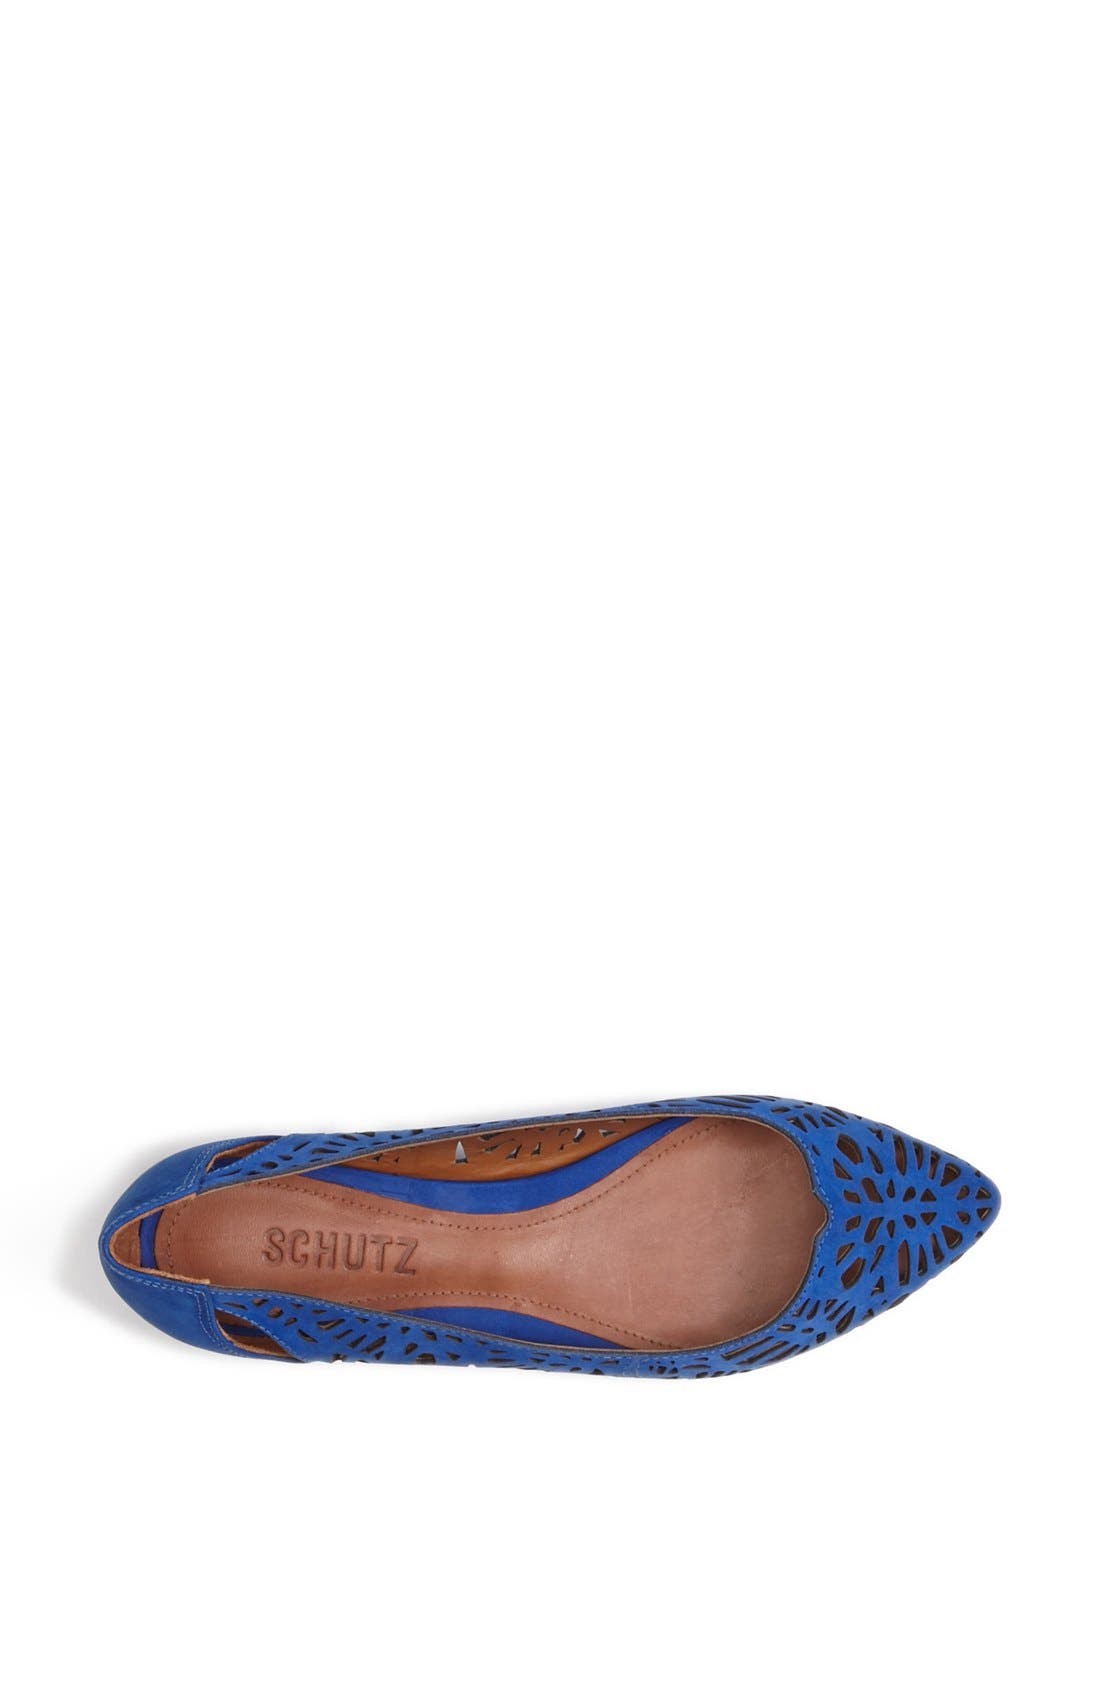 'Cicely' Perforated Flat,                             Alternate thumbnail 4, color,